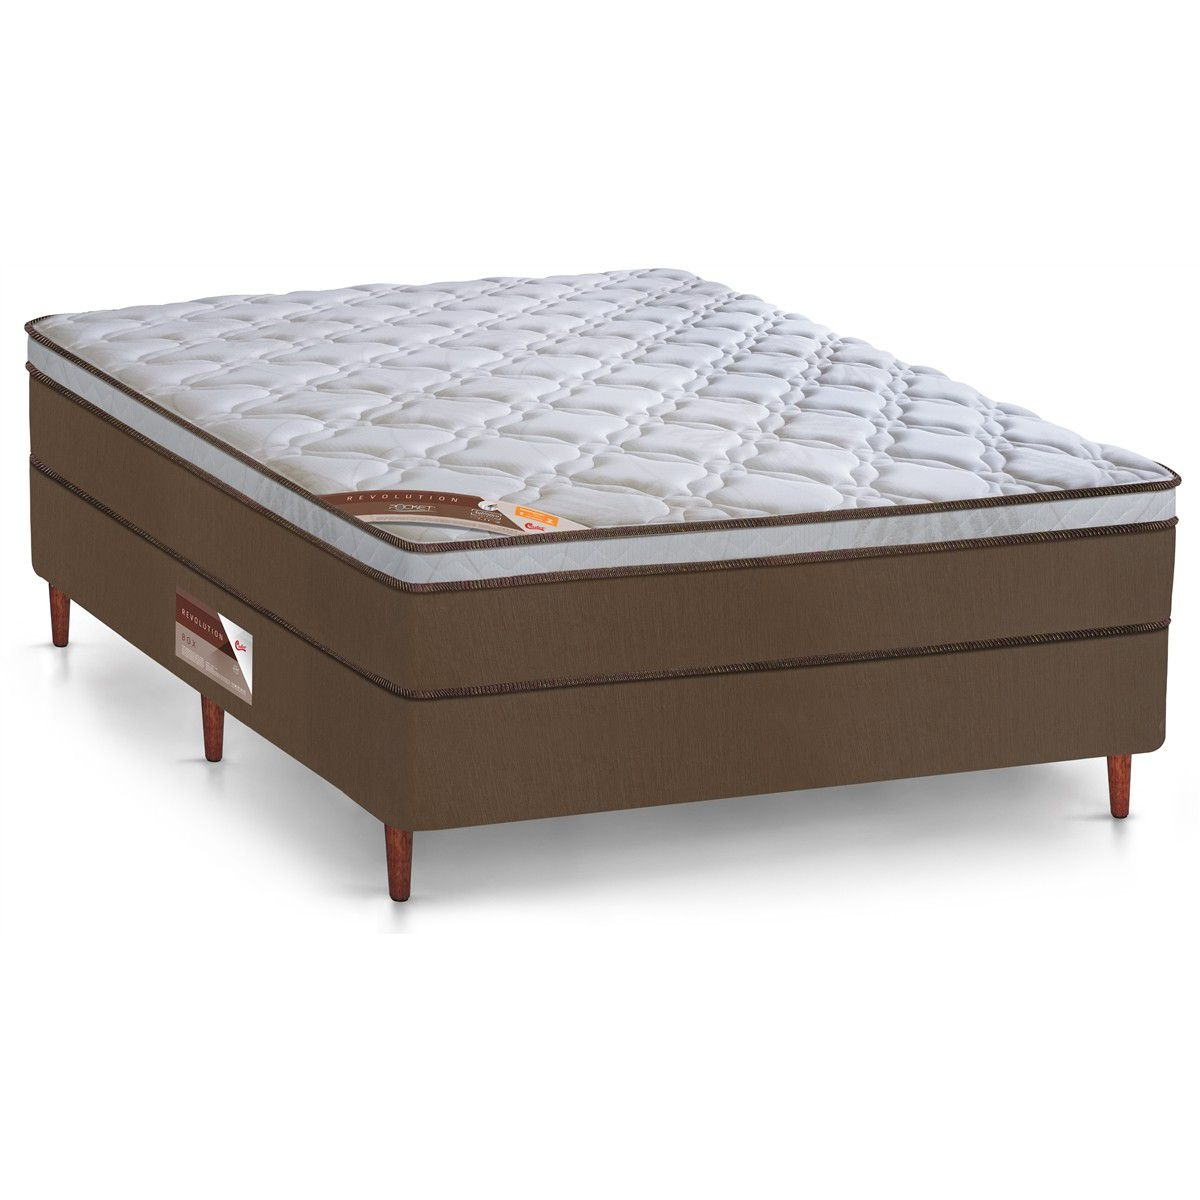 Cama Box Com Colchão Queen Size Castor Revolution Com Molas Pocket